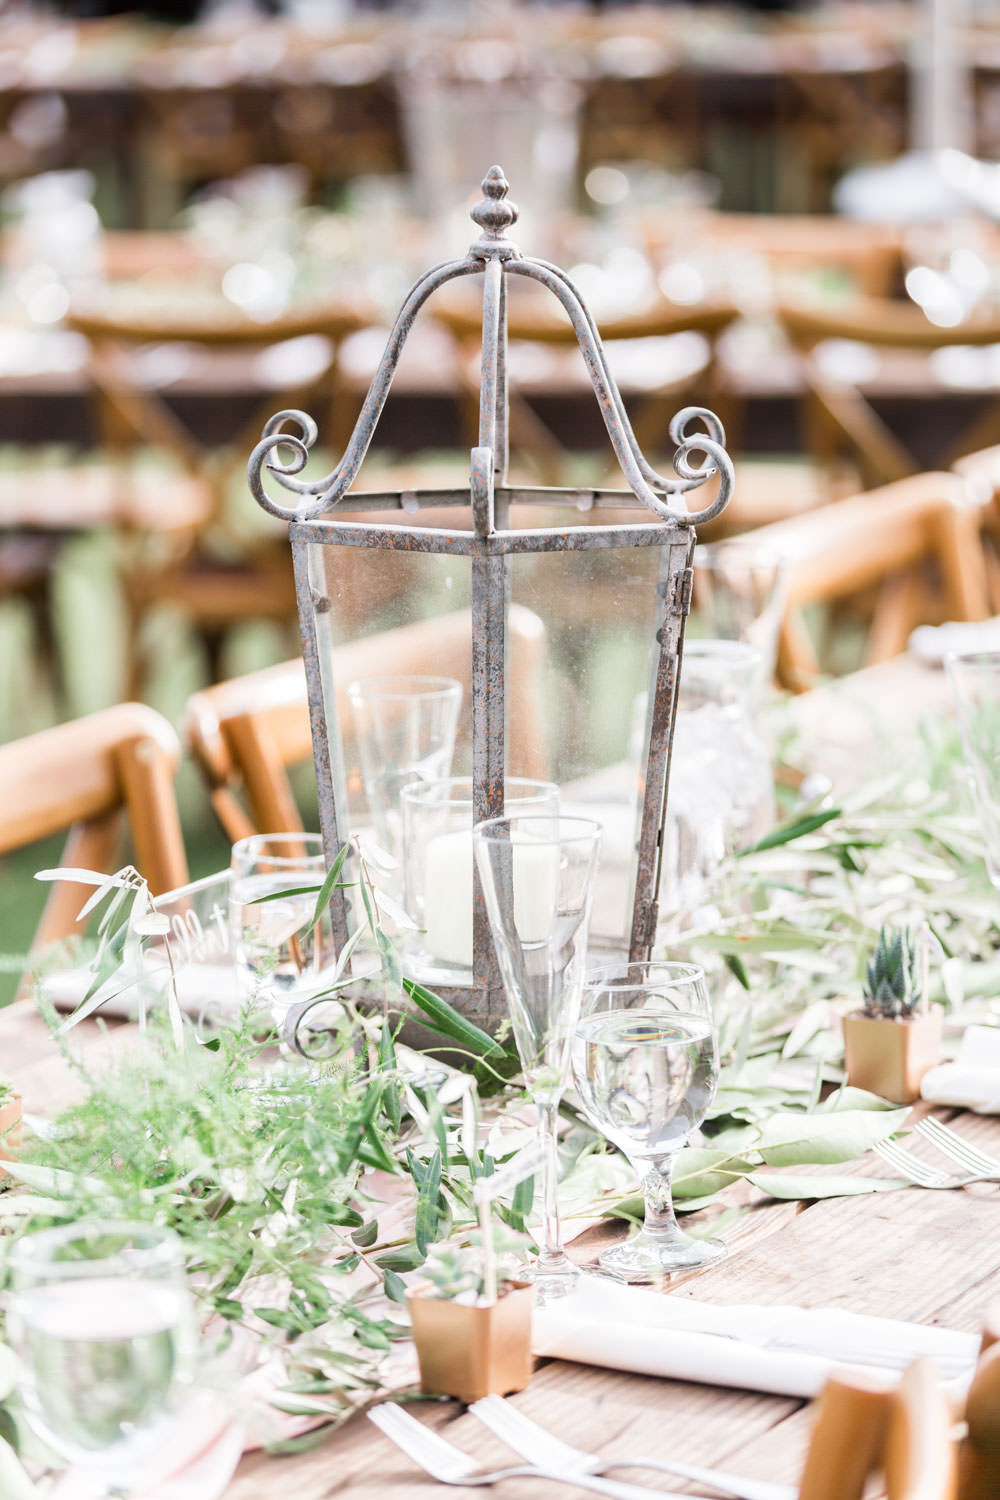 Lantern centerpiece for Ethereal Open Air Resort Wedding Reception outdoors with market lights, Cavin Elizabeth Photography